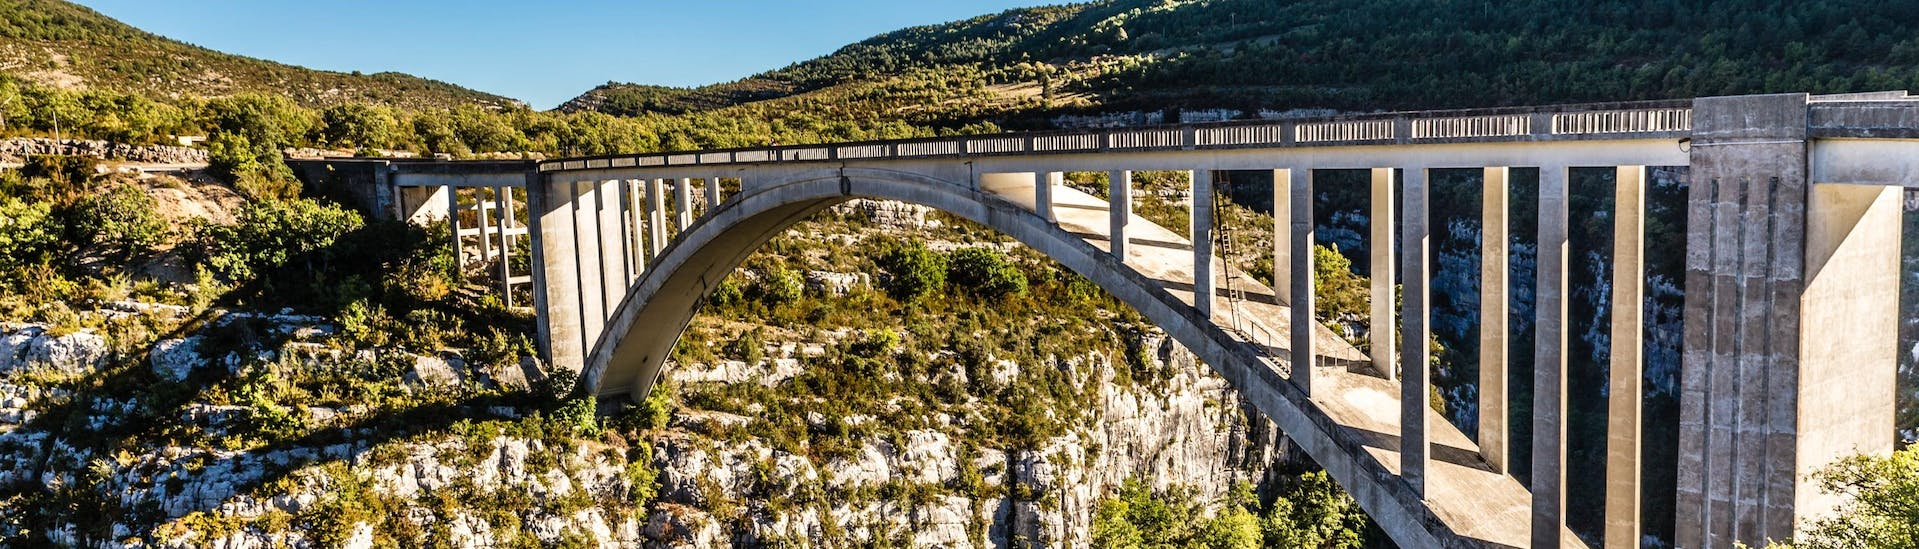 View from the Artuby bridge in the Gorges du Verdon, one of the most popular places in France for bungee jumping.